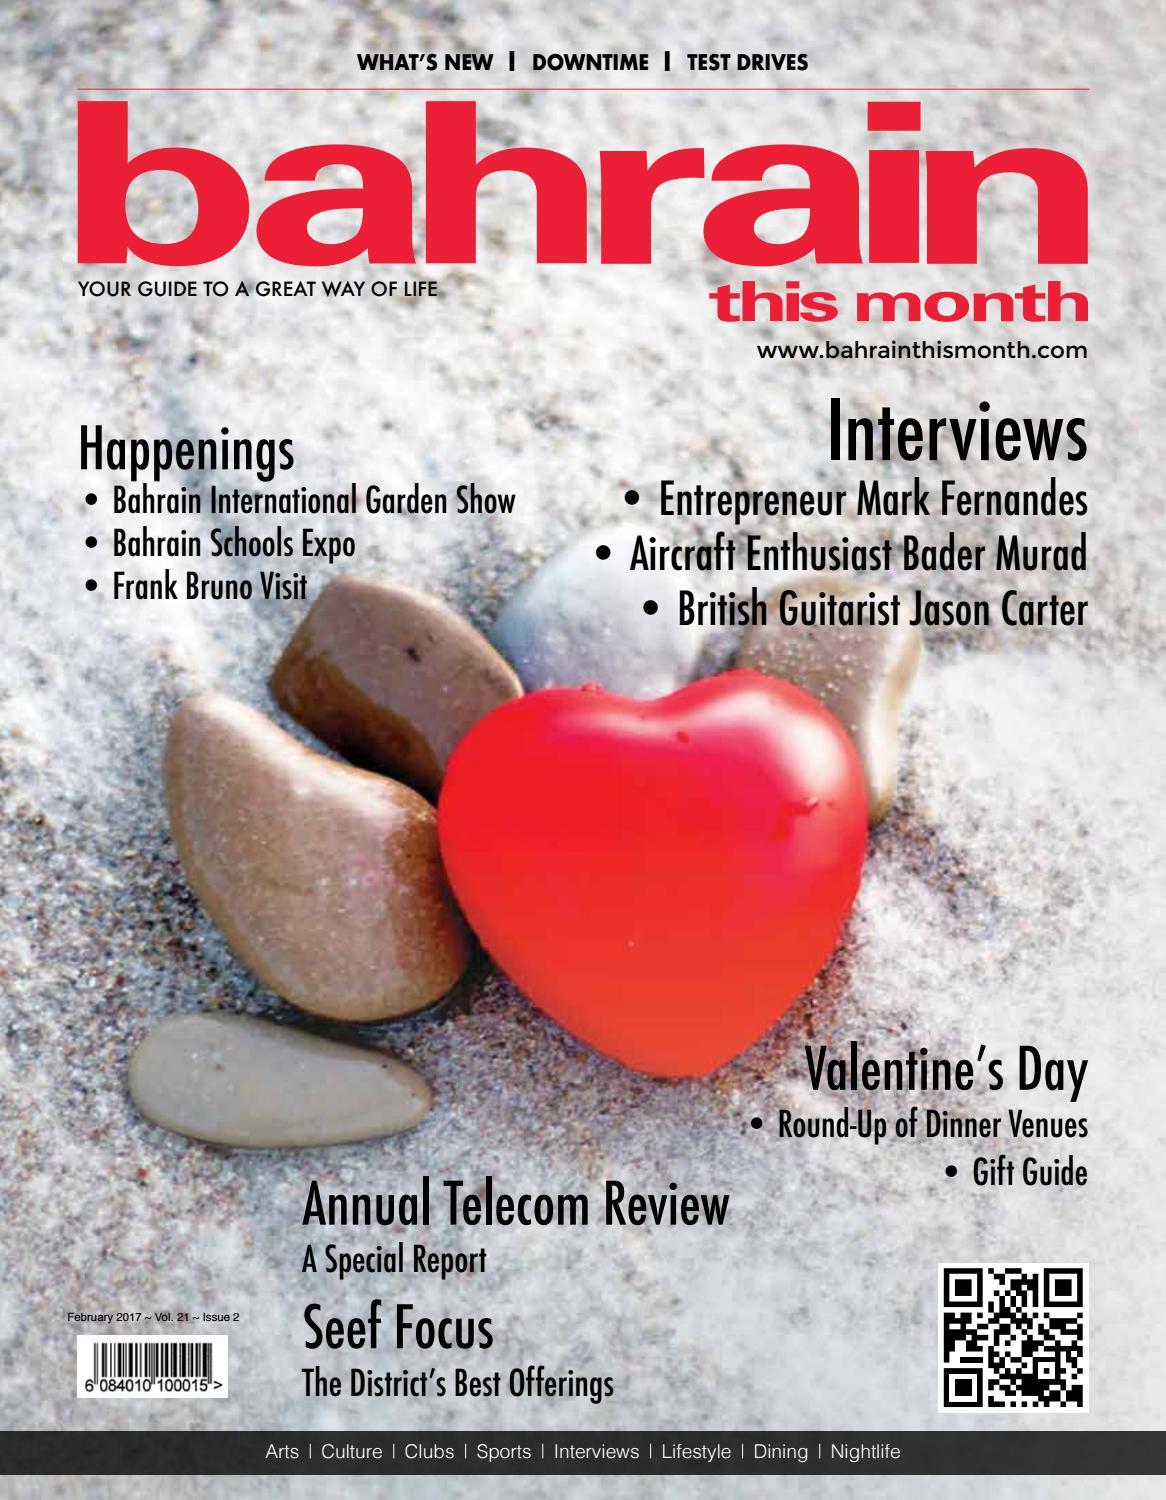 Bahrain This Month - February 2017 by Red House Marketing